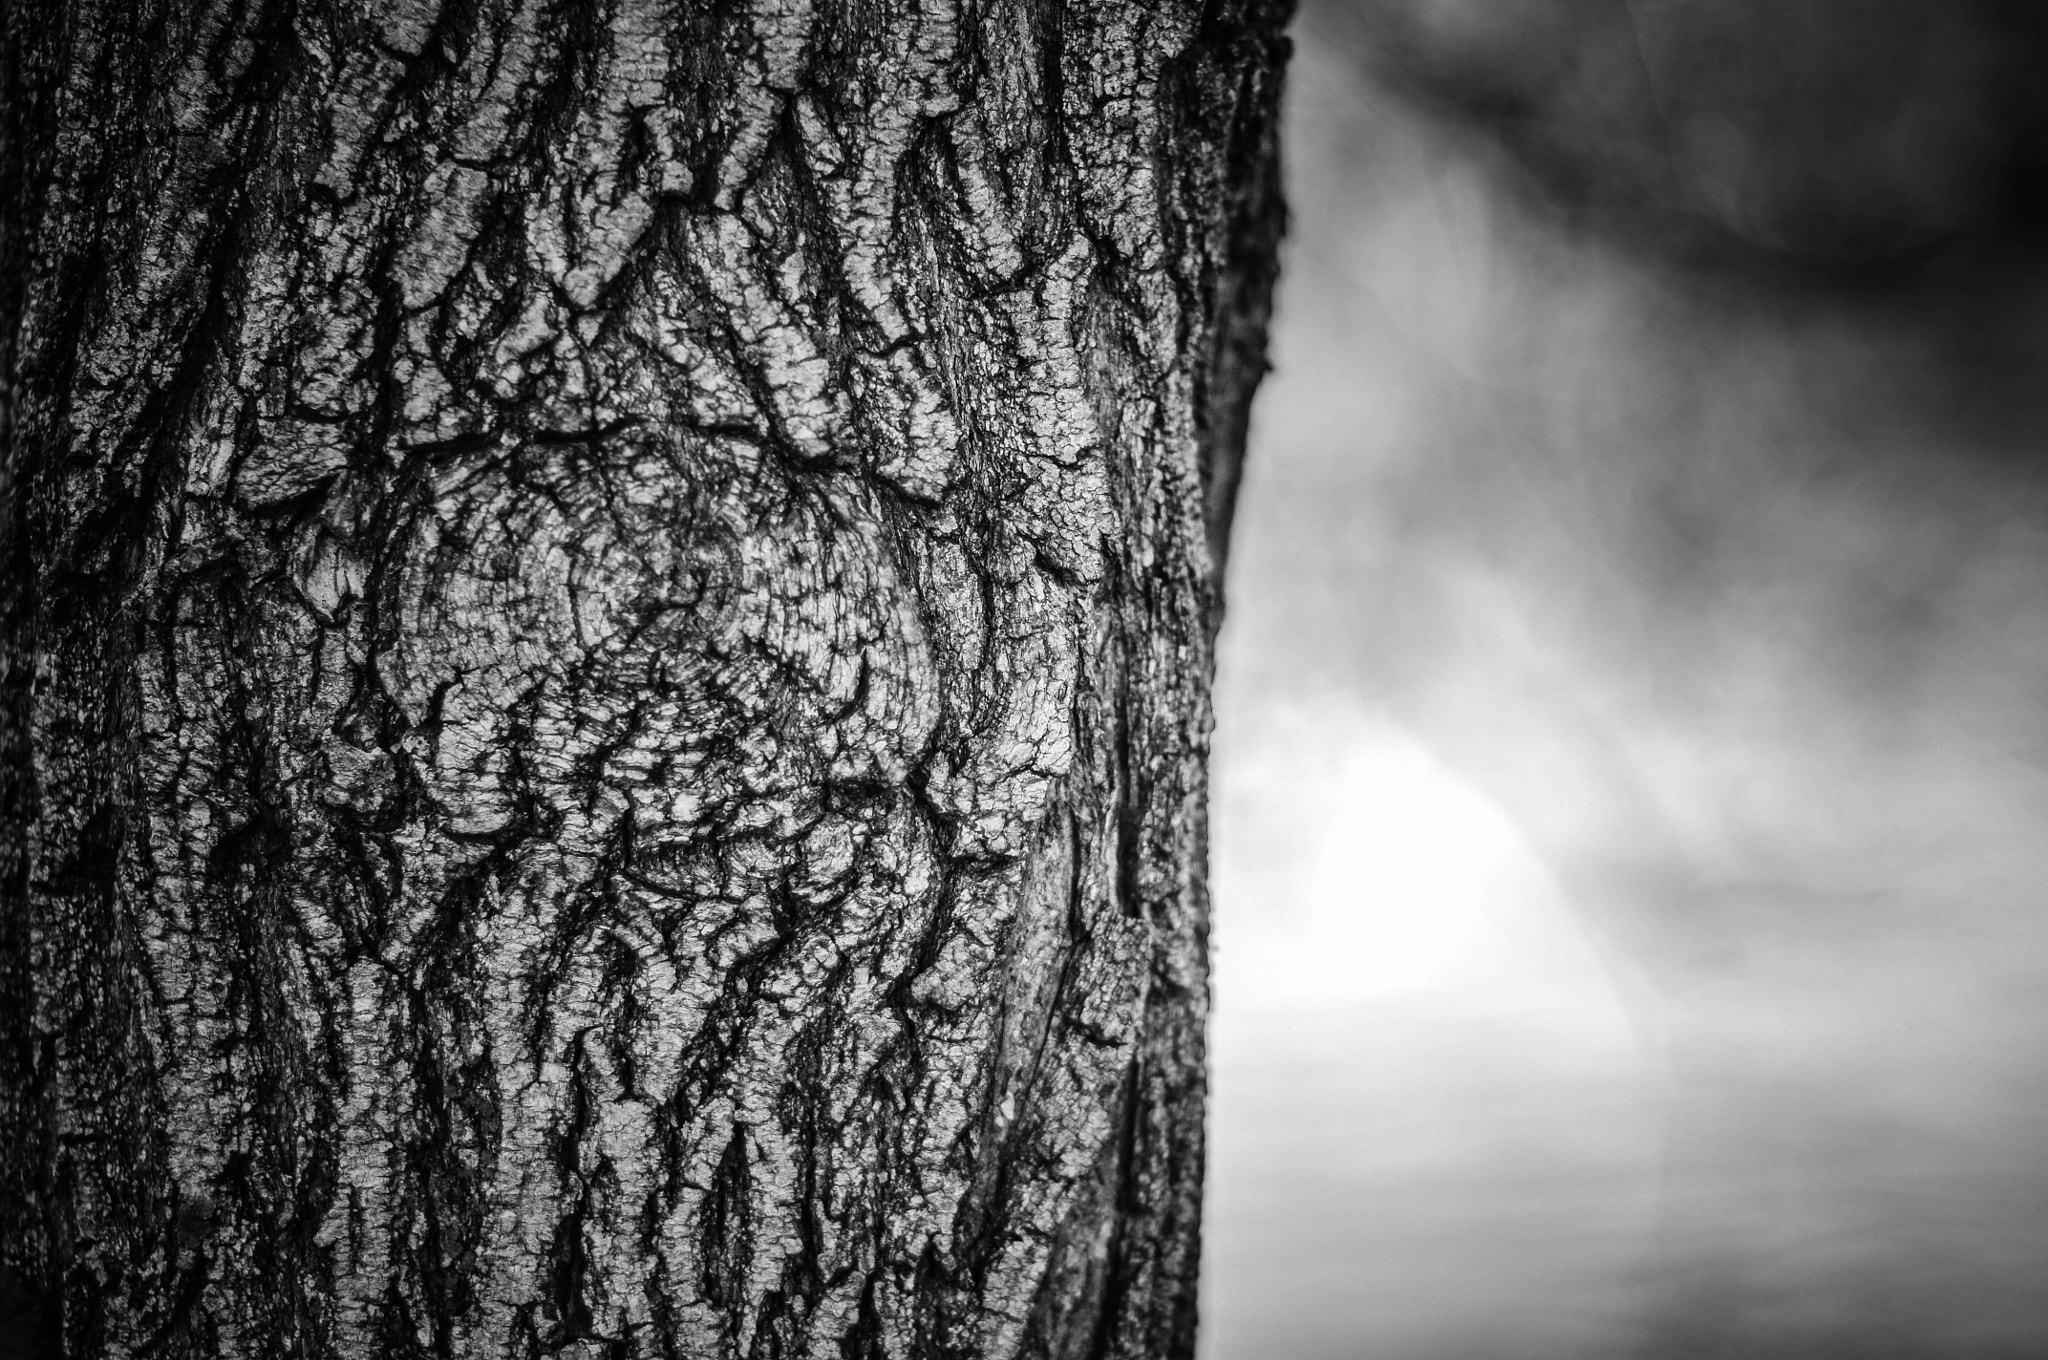 Photograph The eye in the tree by Miroslav Skorykh on 500px